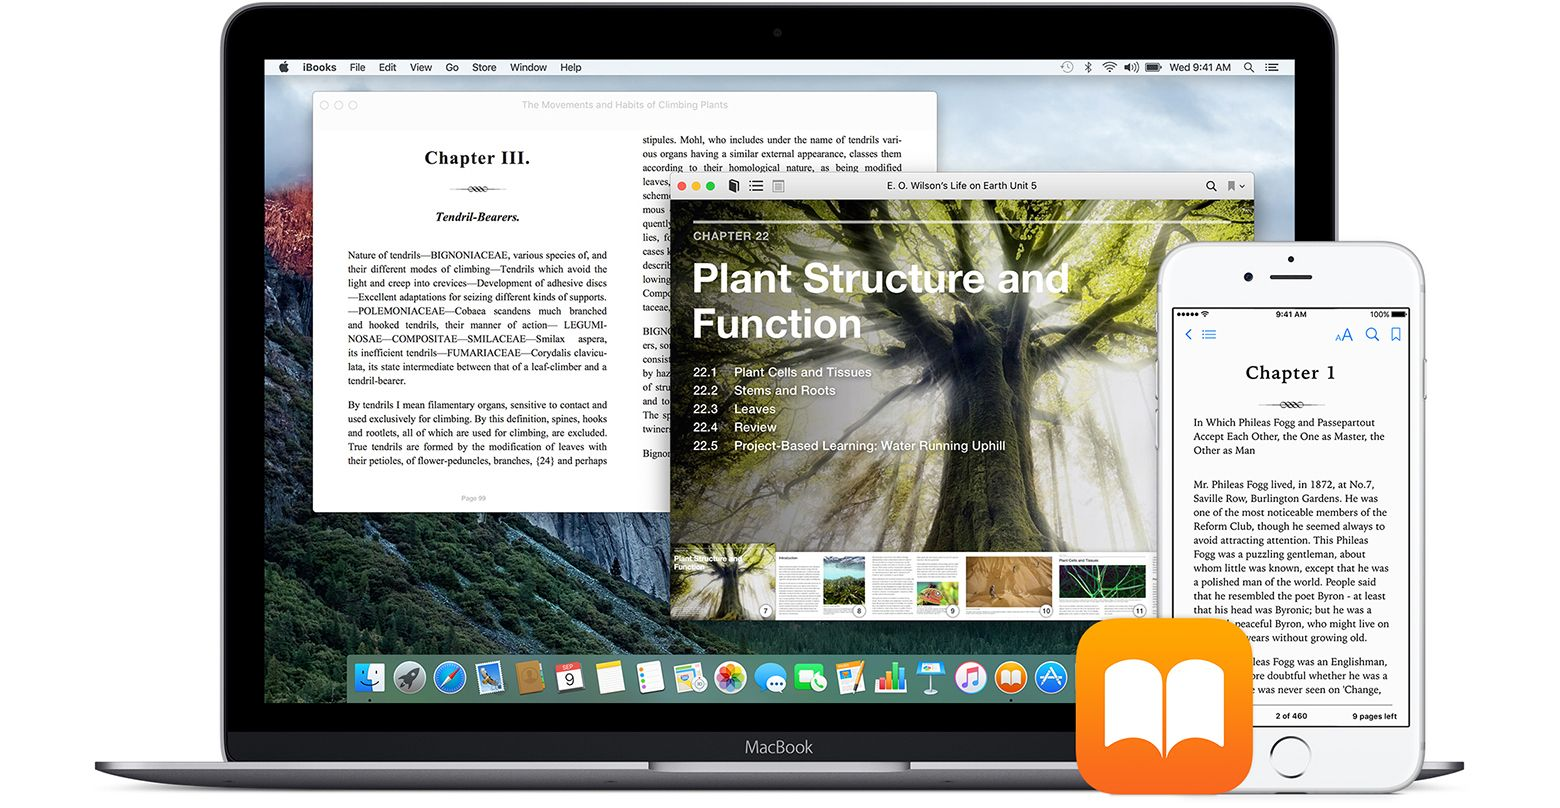 Can't open PDF in Books app on iPhone, iPad or iPod touch